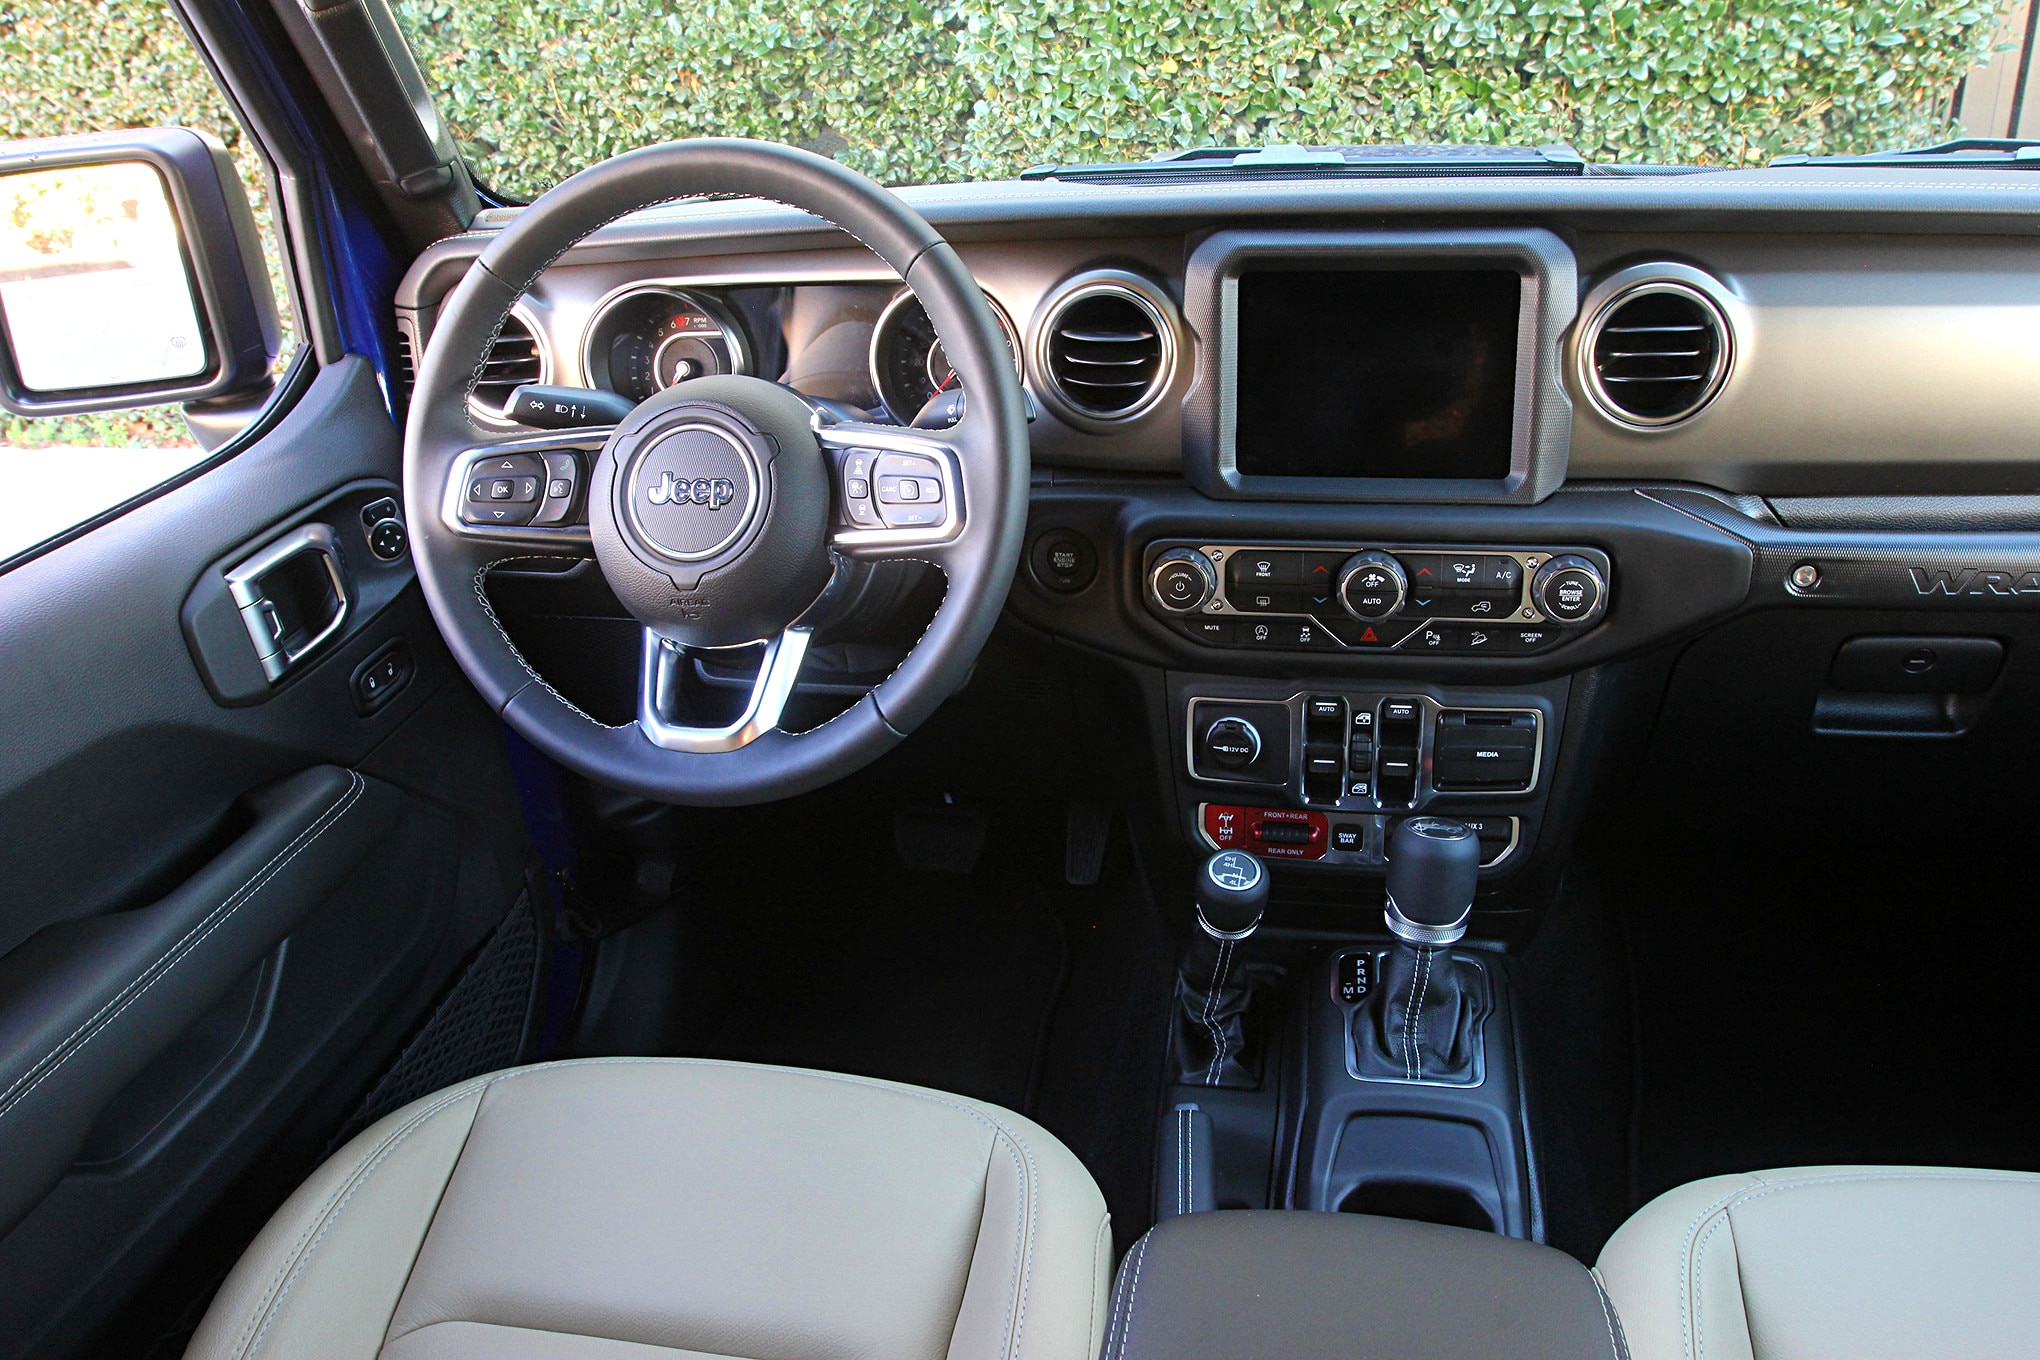 2019 suv of the year jeep wrangler unlimited rubicon interior.JPG